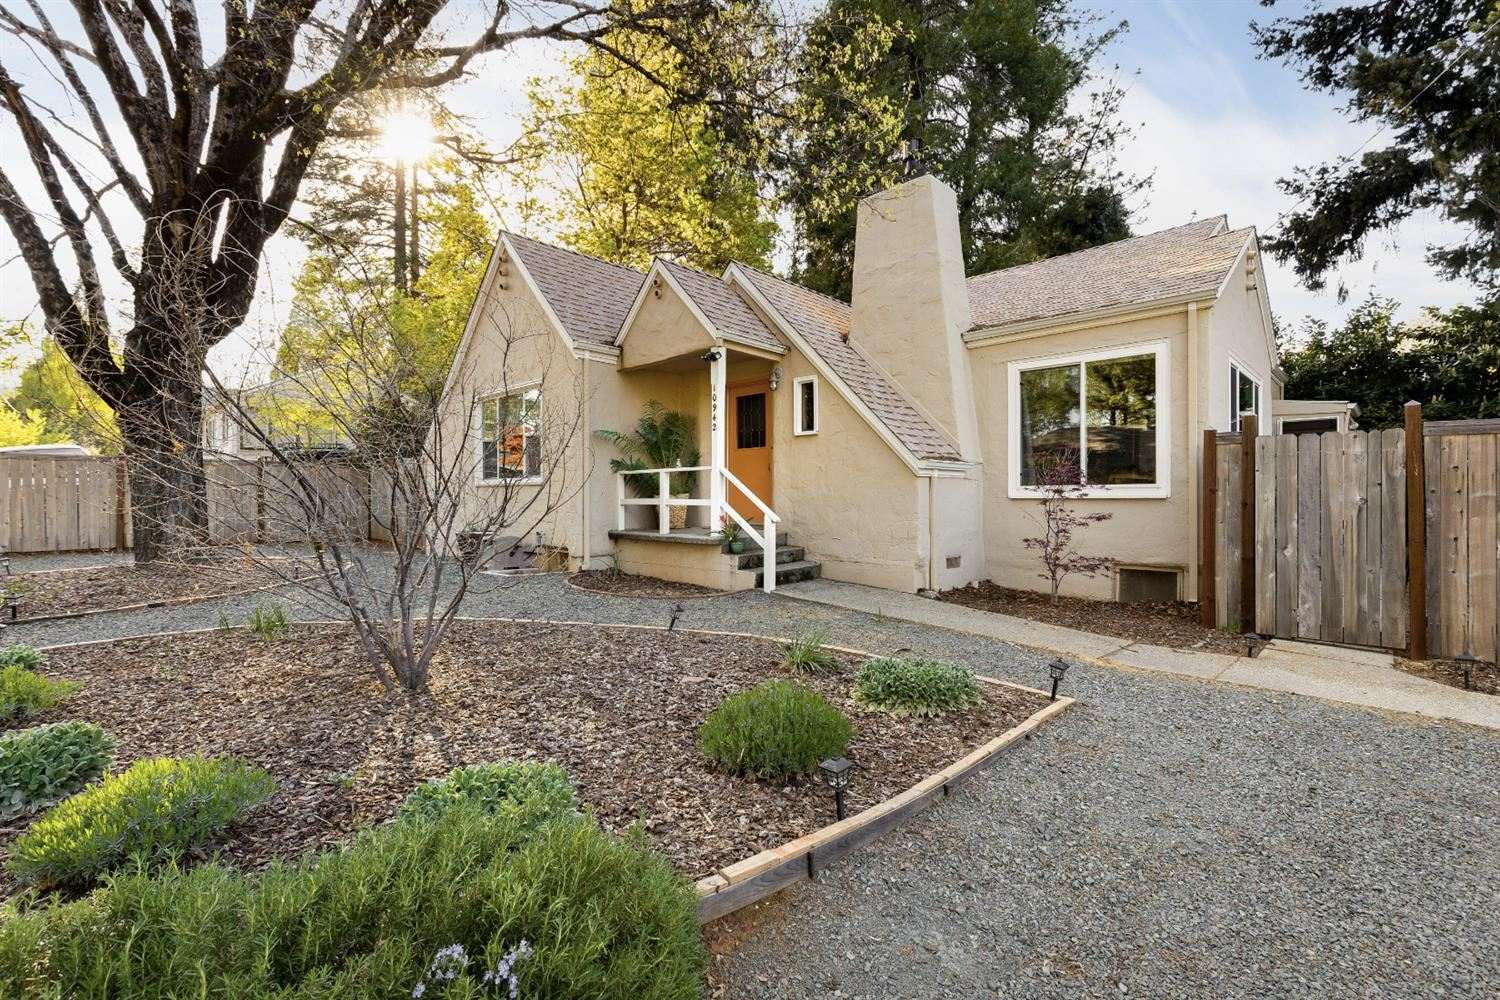 Photo of 10942 Sunrise Heights, Grass Valley, CA 95945 (MLS # 221031700)